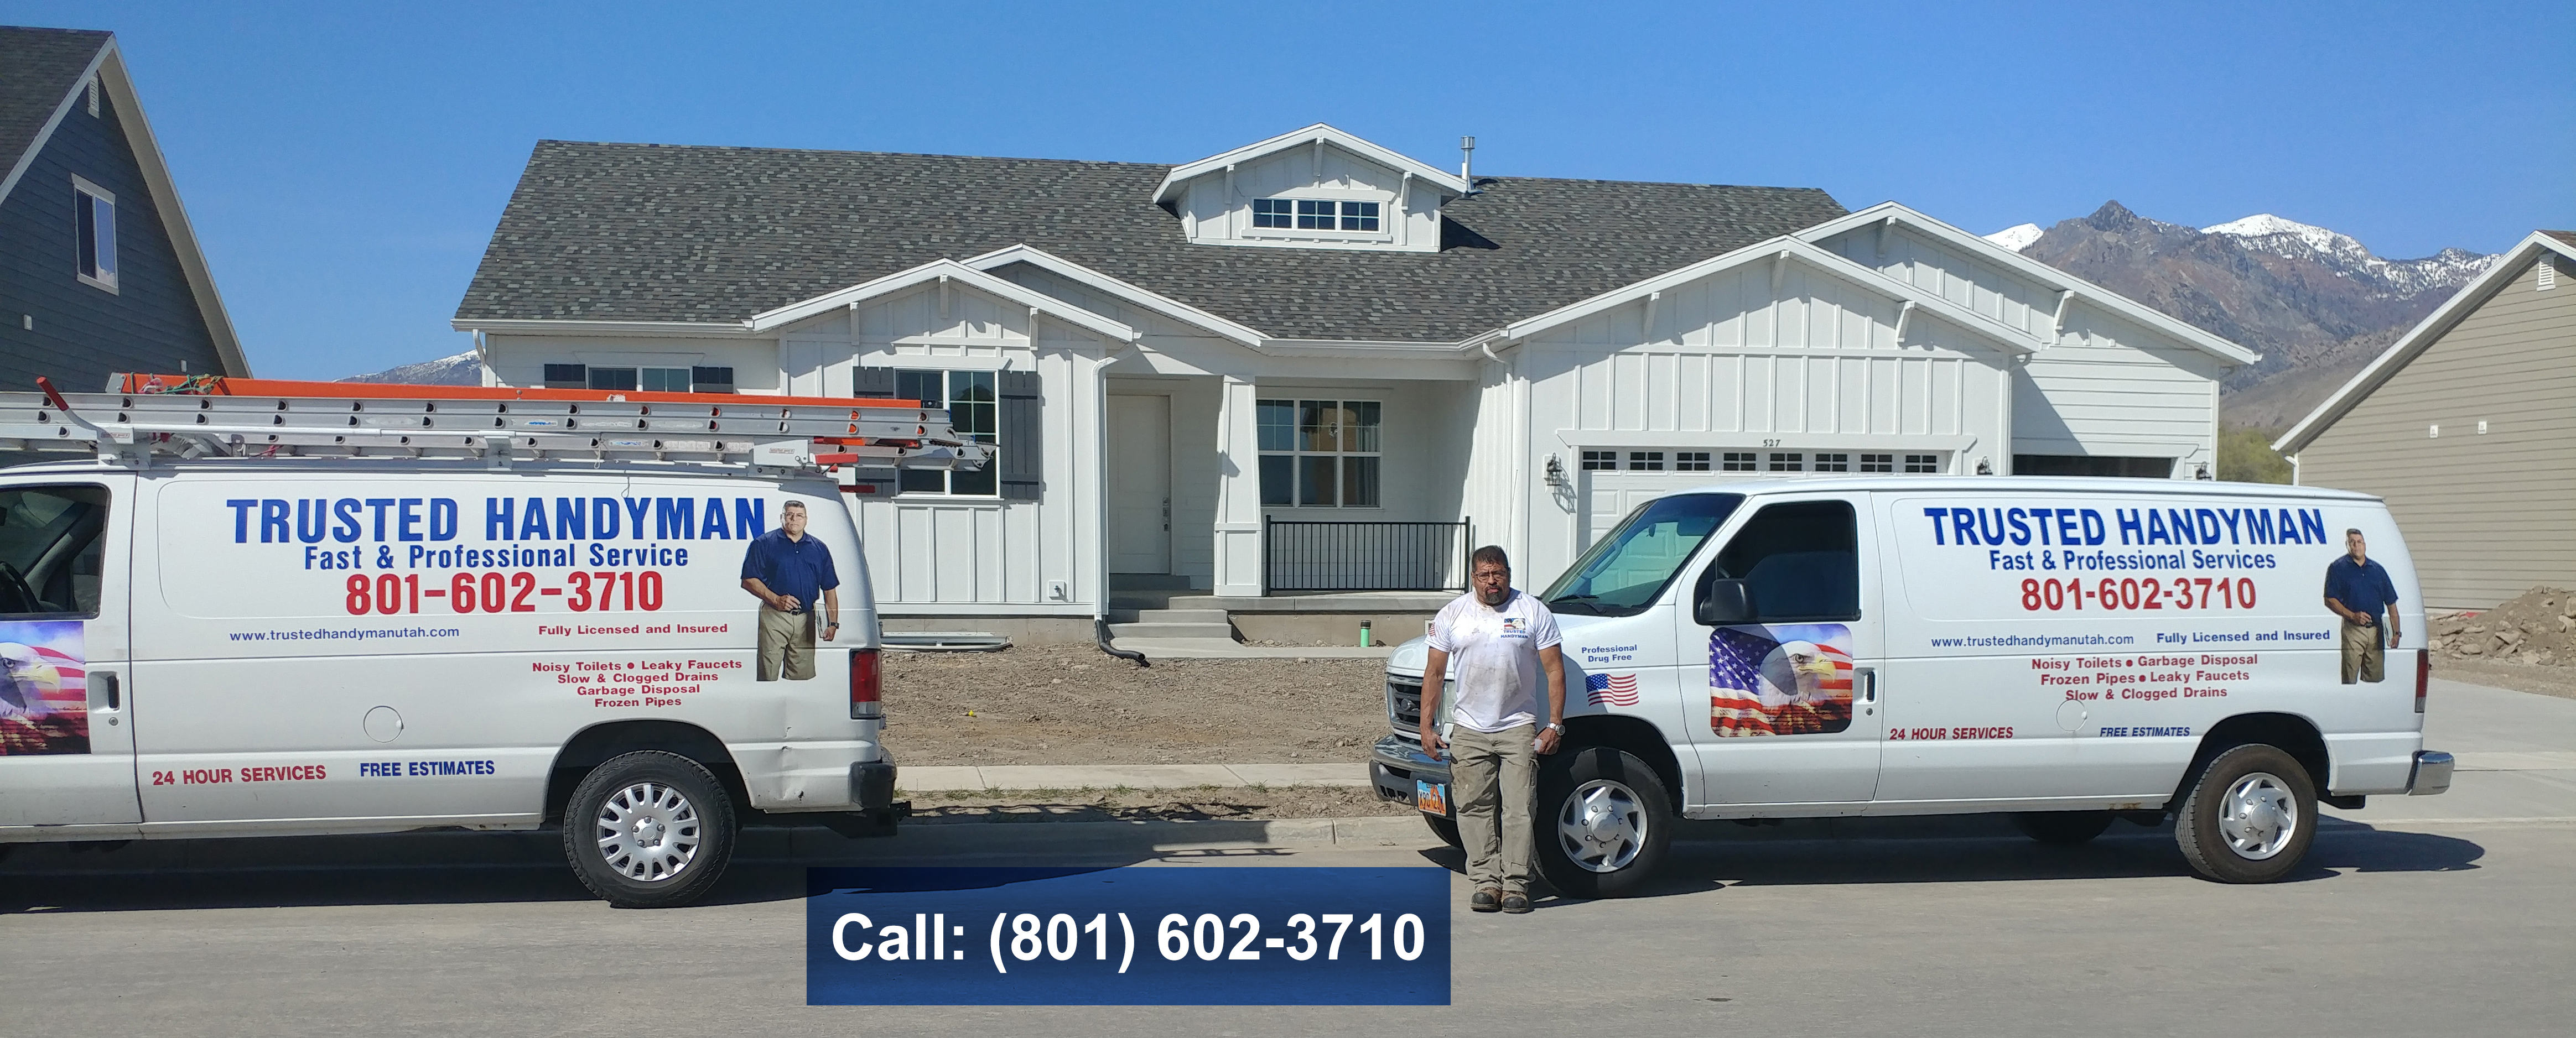 Trusted Handyman - Fast & Professional Services